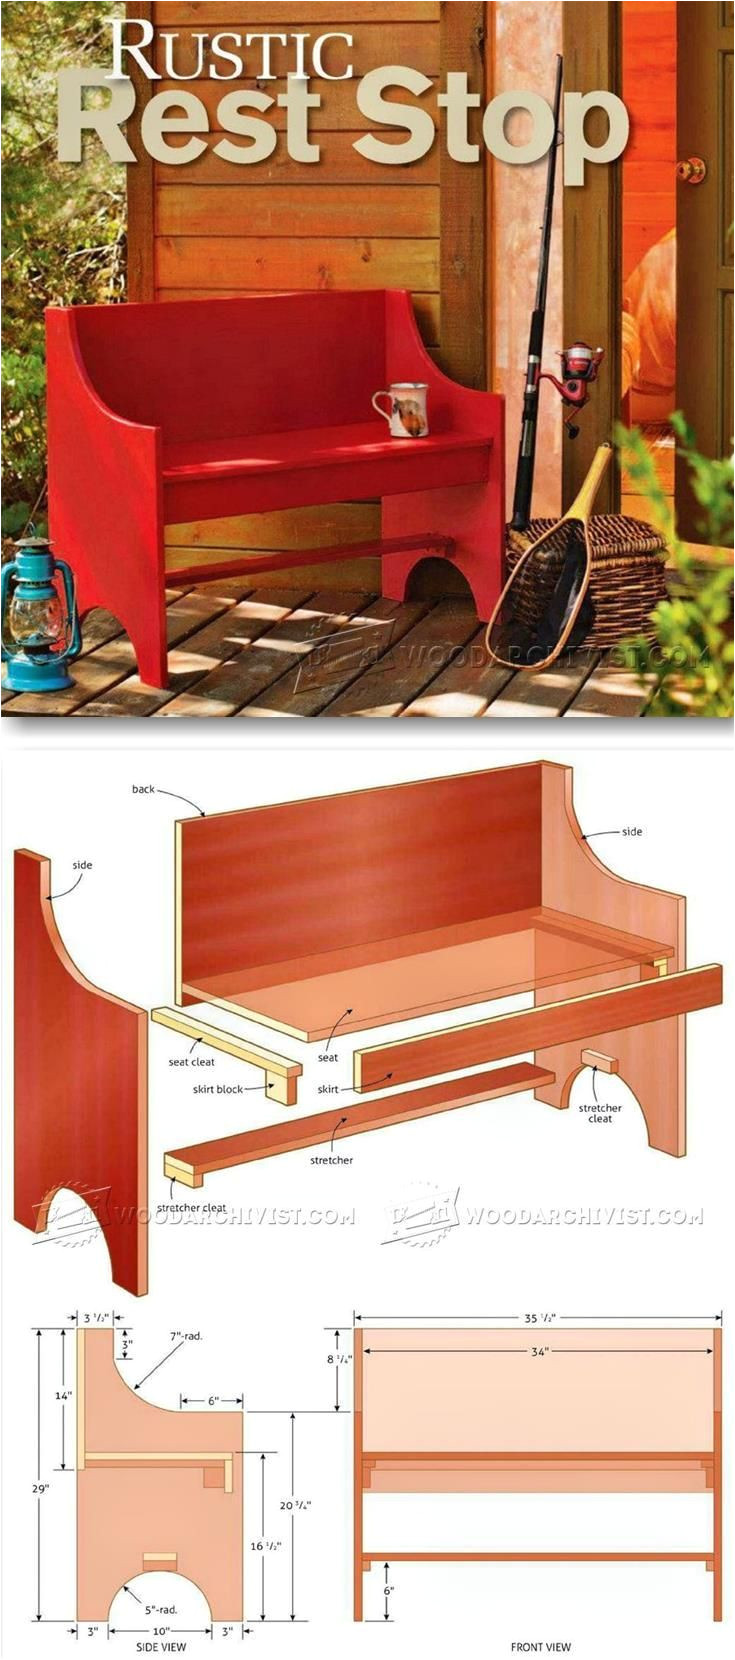 rustic bench plans outdoor furniture plans and projects woodarchivist com